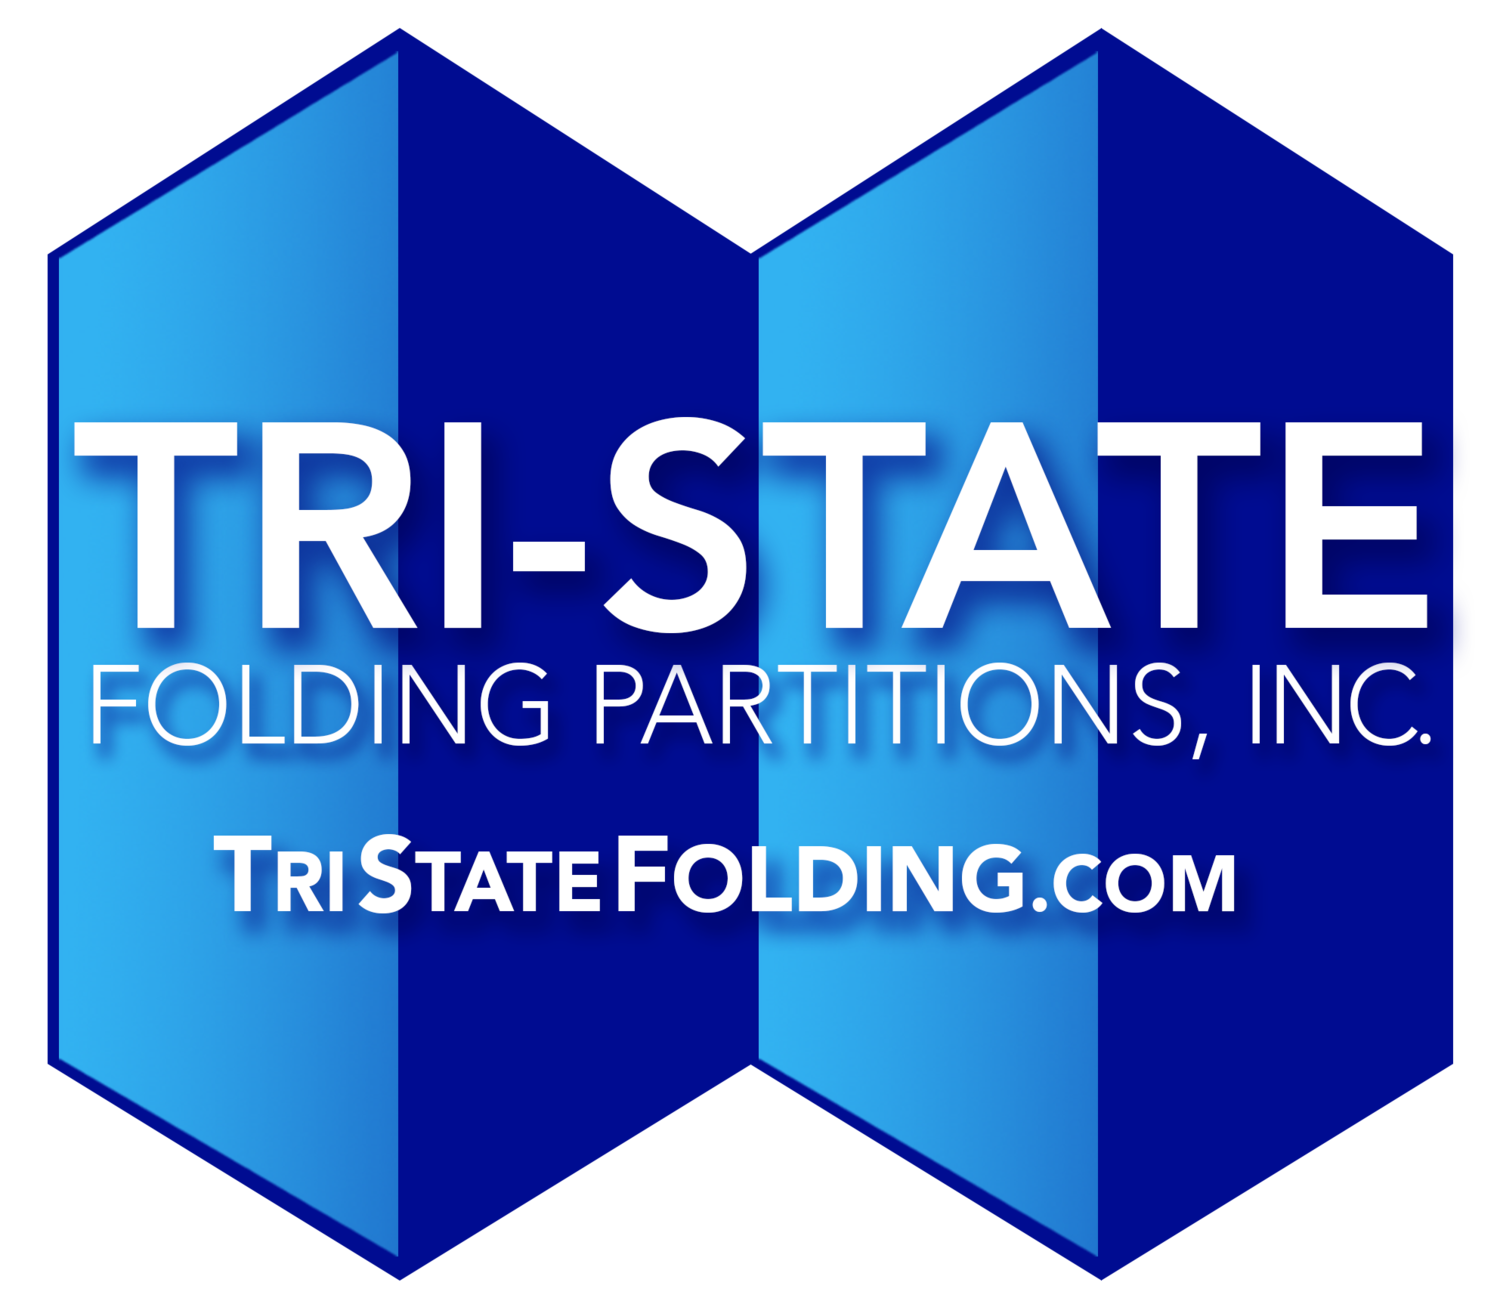 Tri-State Folding Partitions